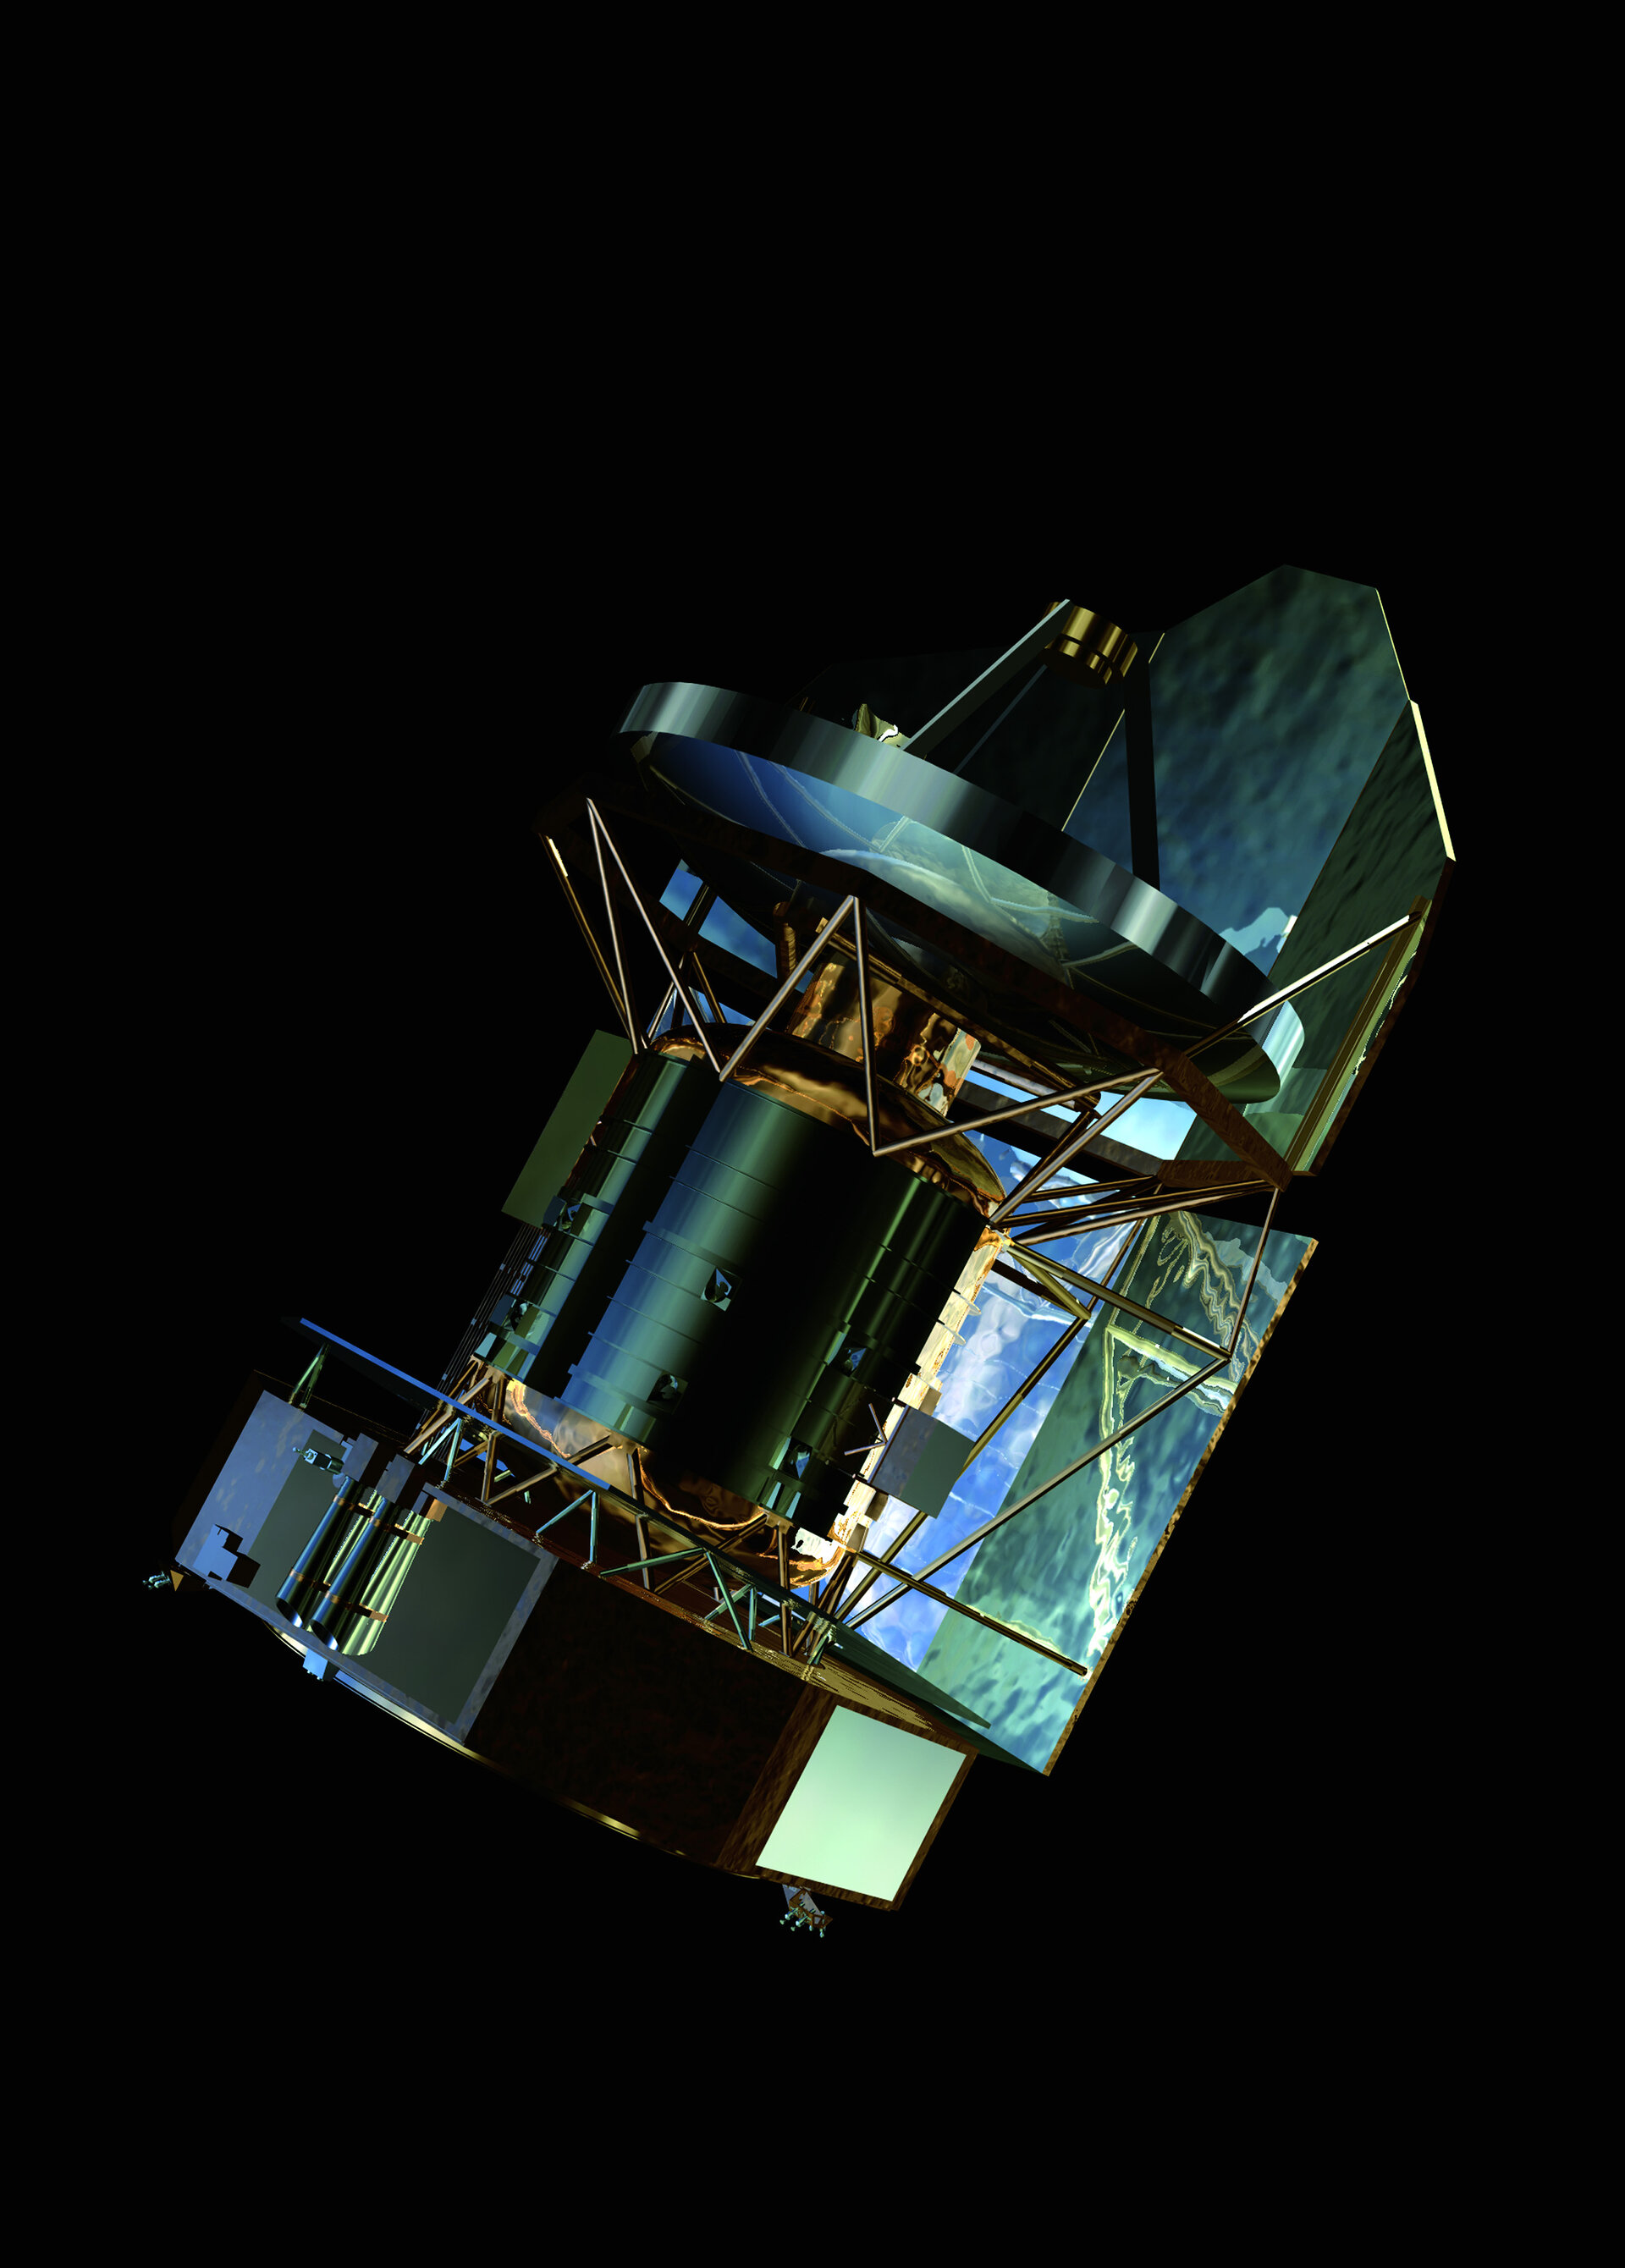 Herschel's telescope will collect infrared radiation from distant stars